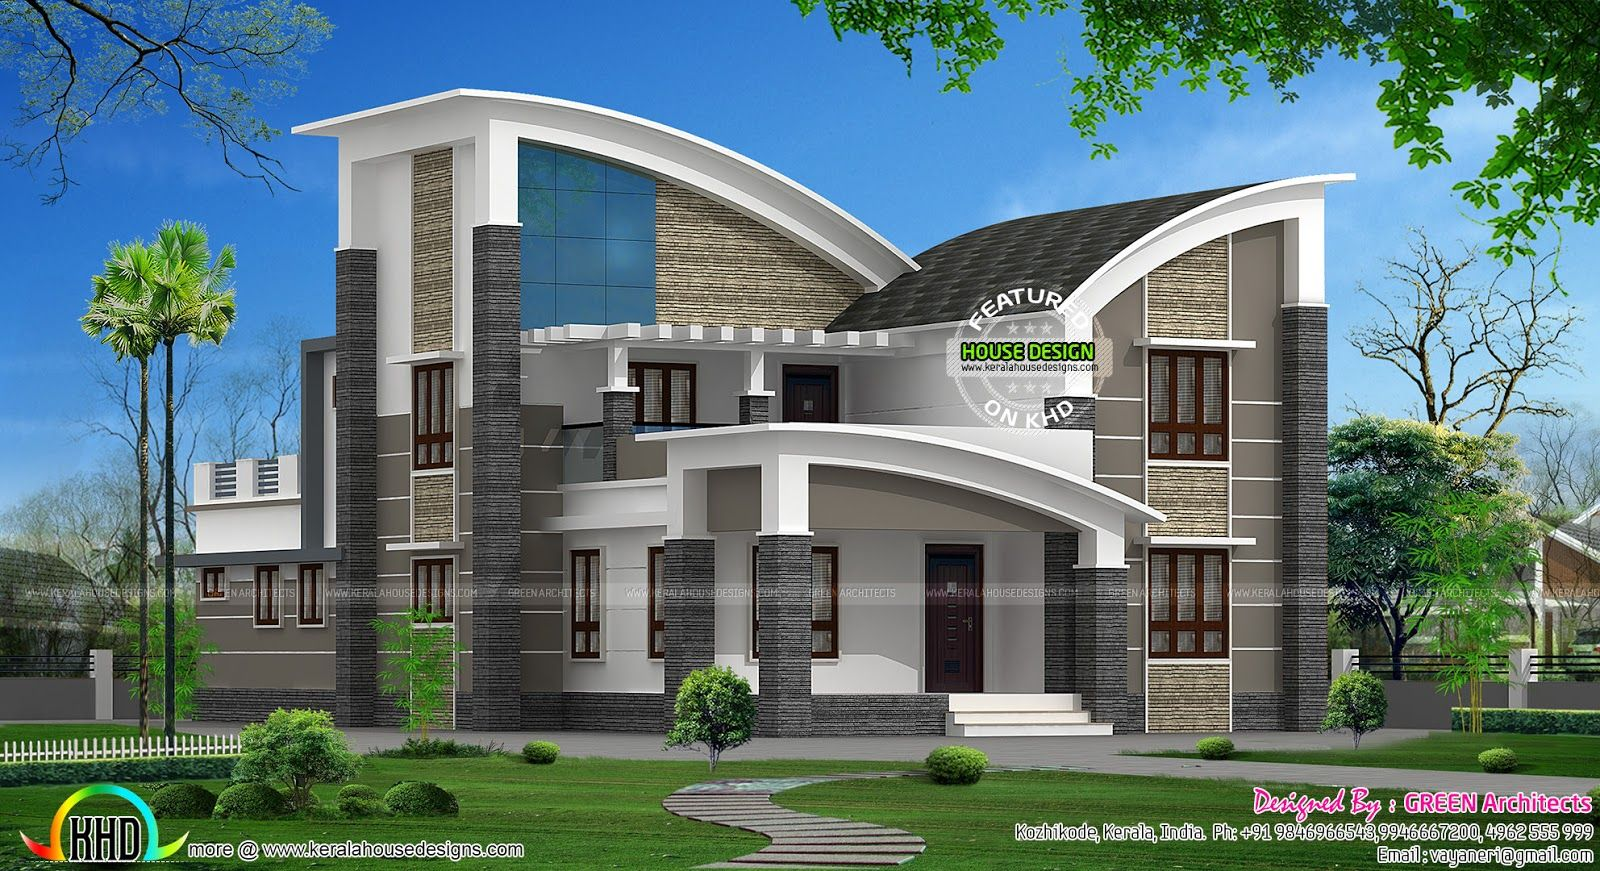 Modern style curved roof villa home inspiration for Contemporary style home plans